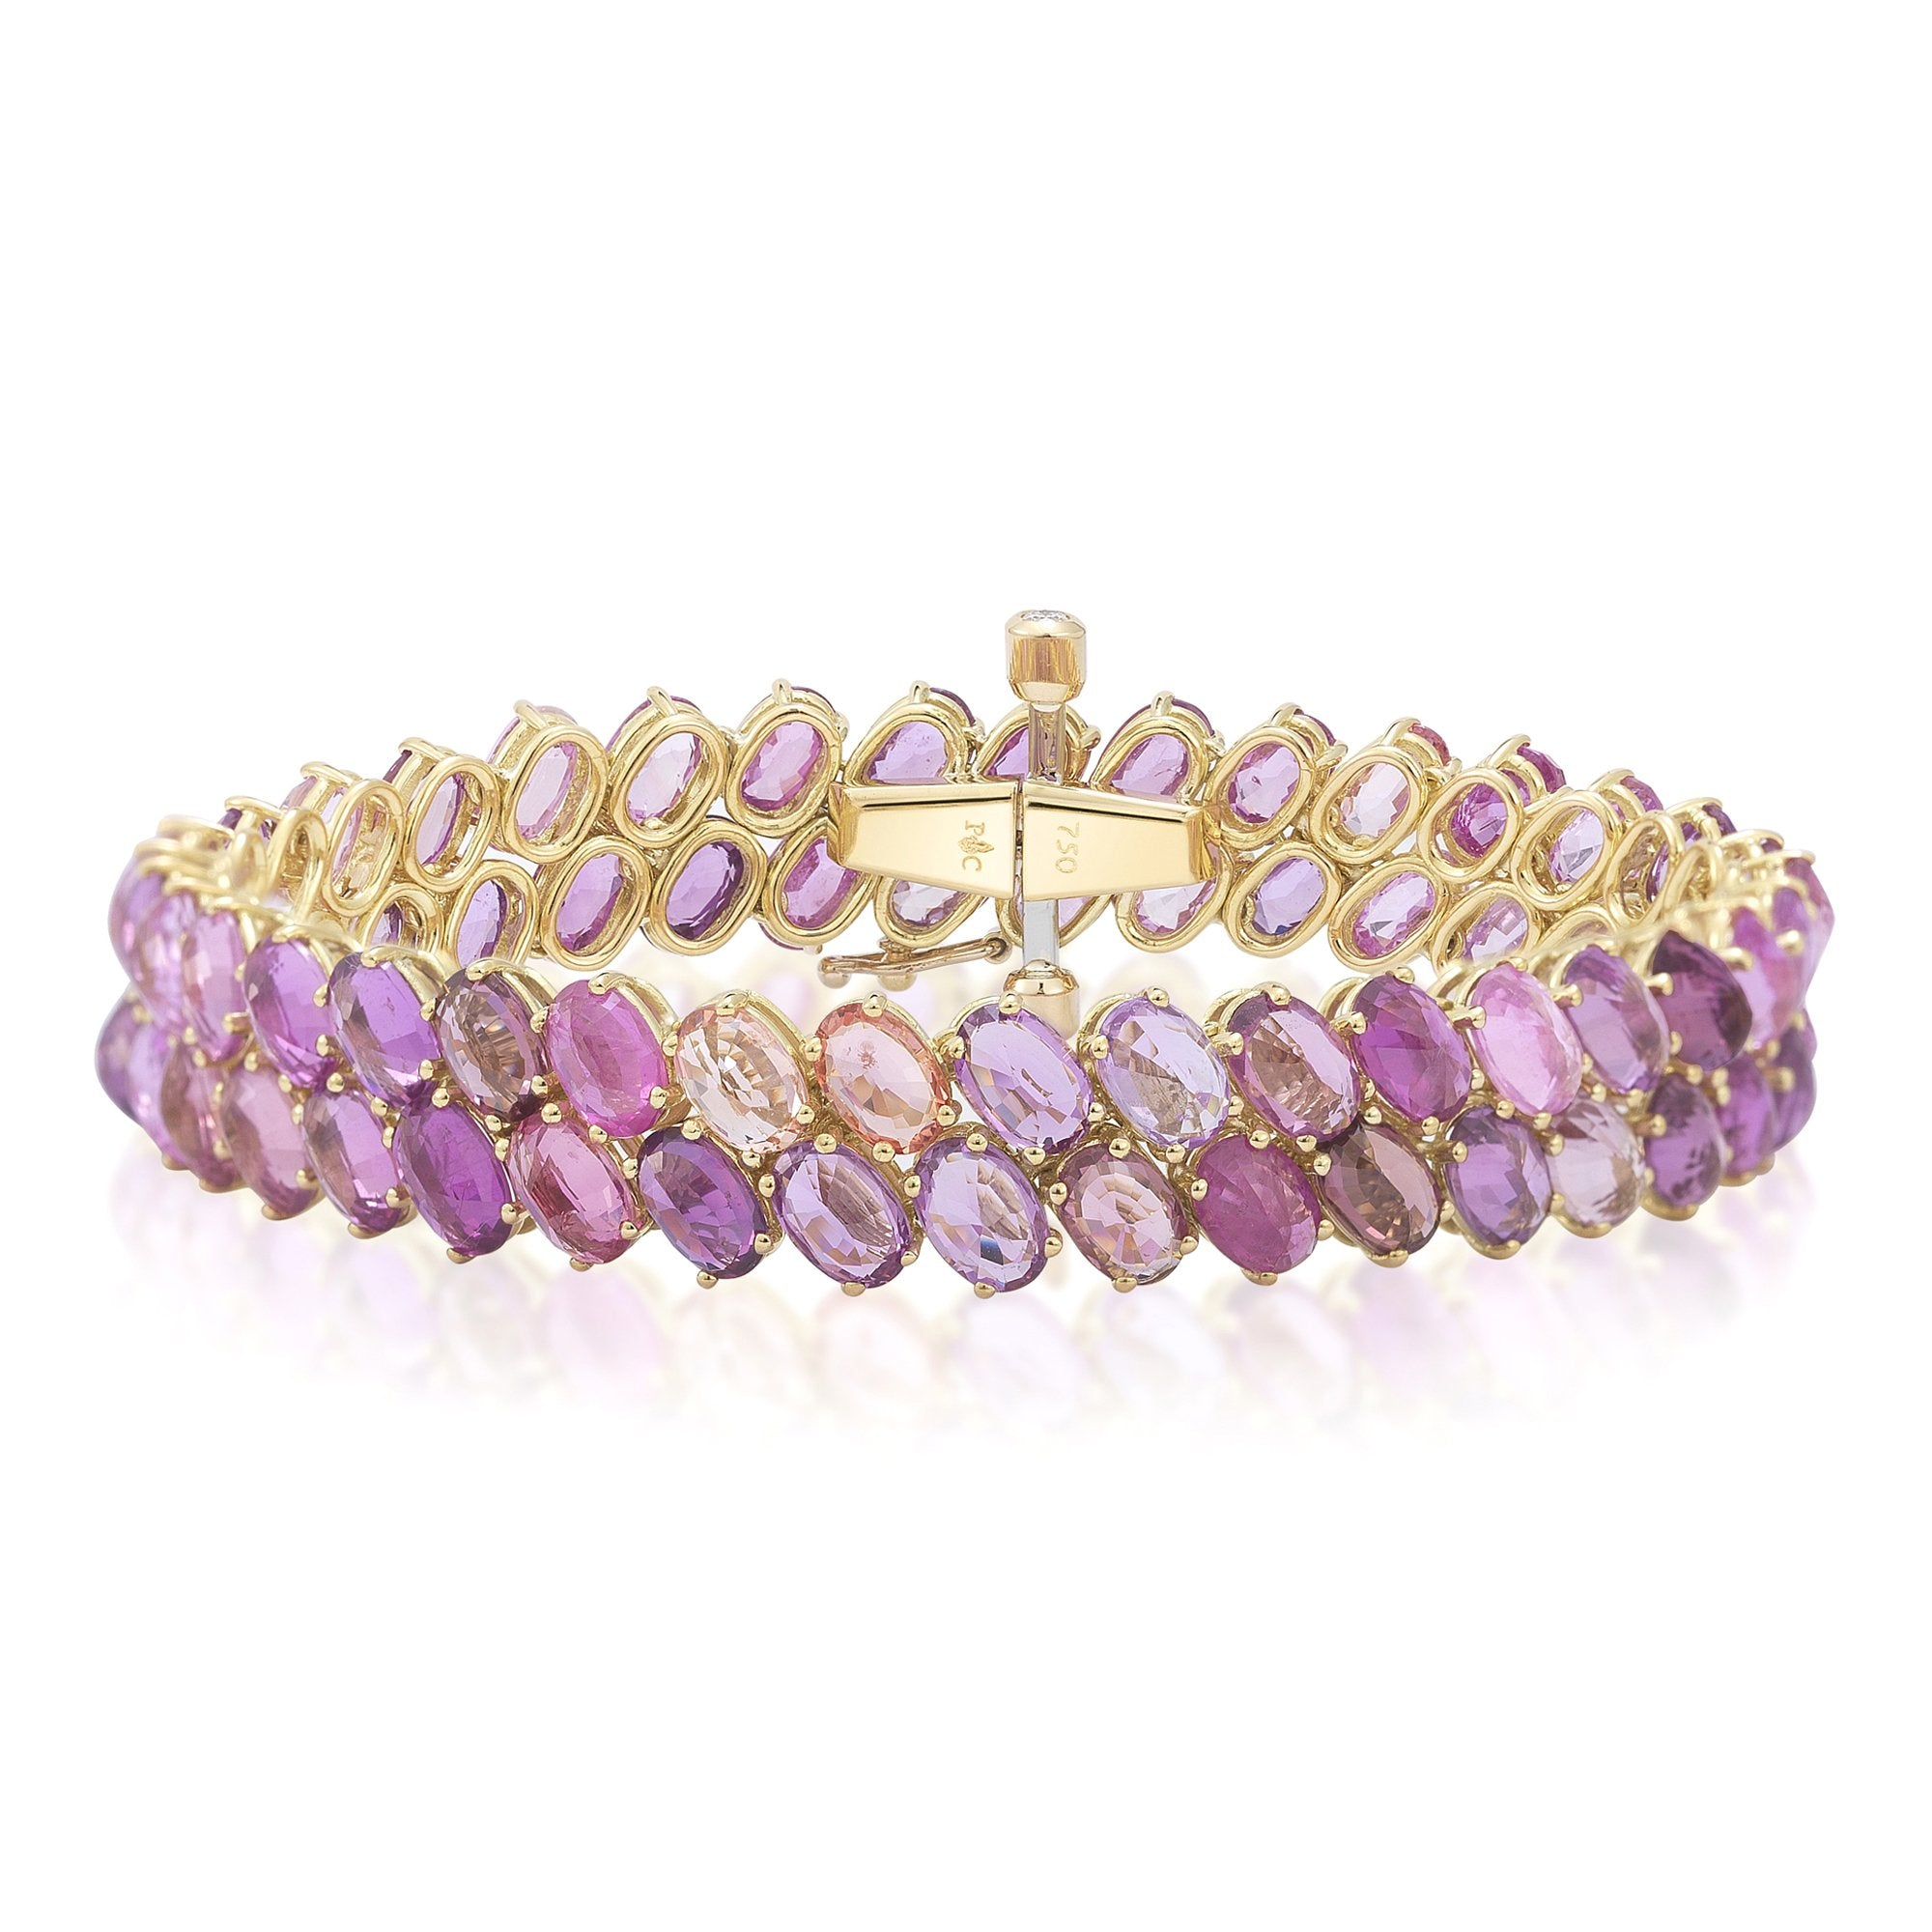 Pink Sapphire 'Ombre' Bracelet - Paolo Costagli - 1